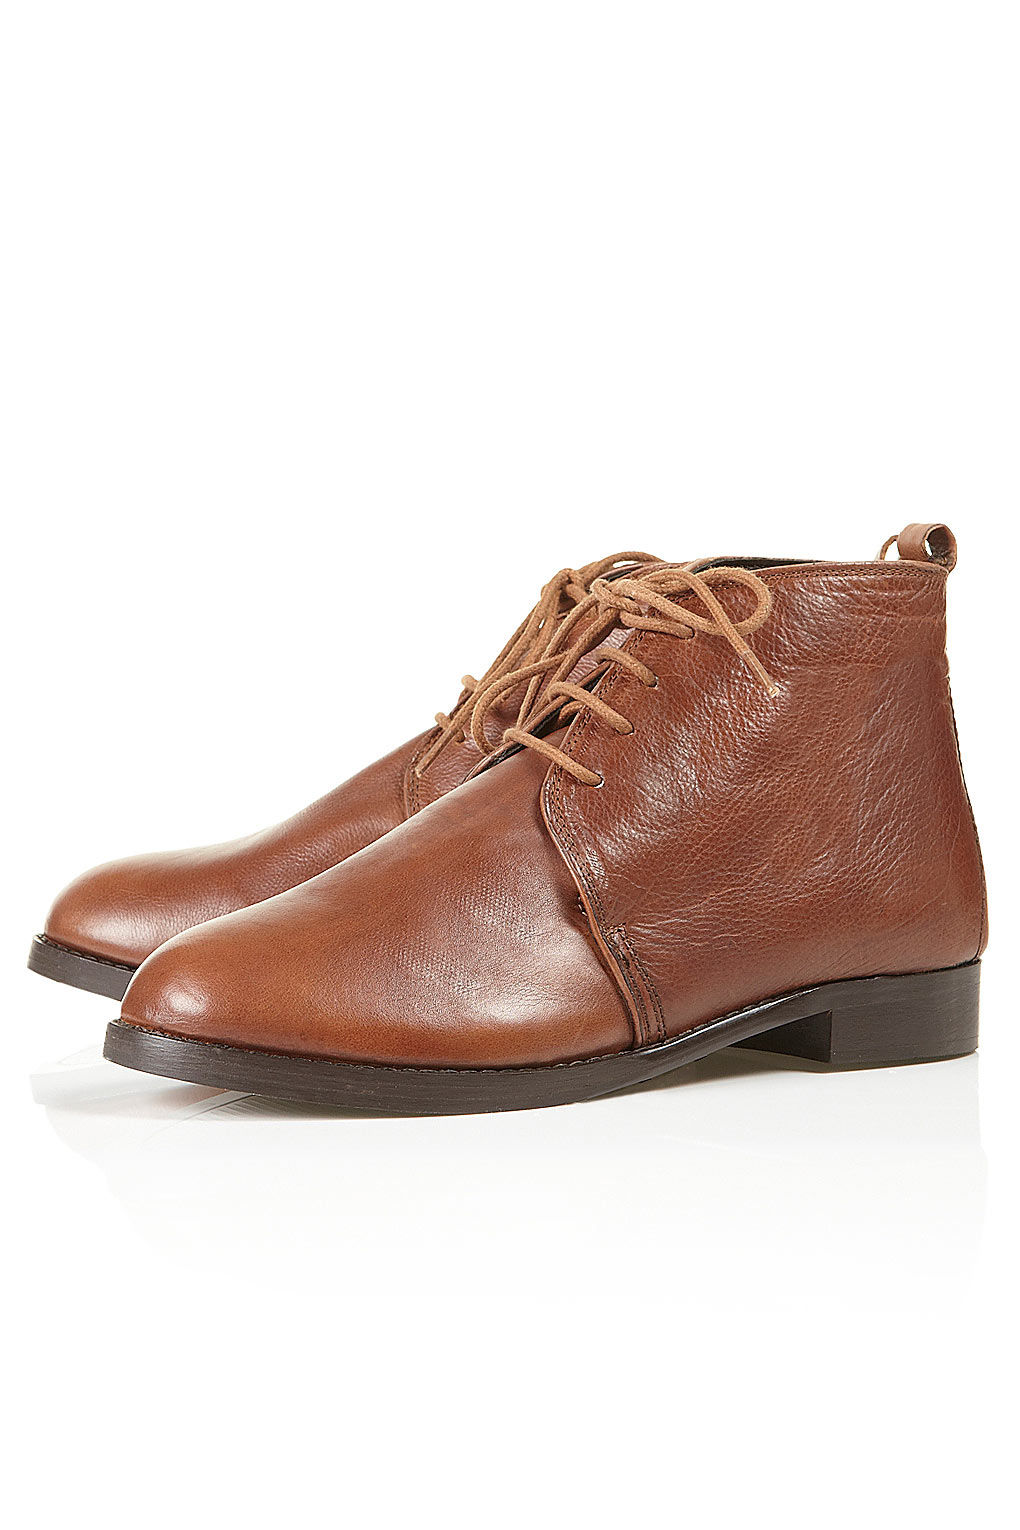 matisse matisse leather boots in brown lyst